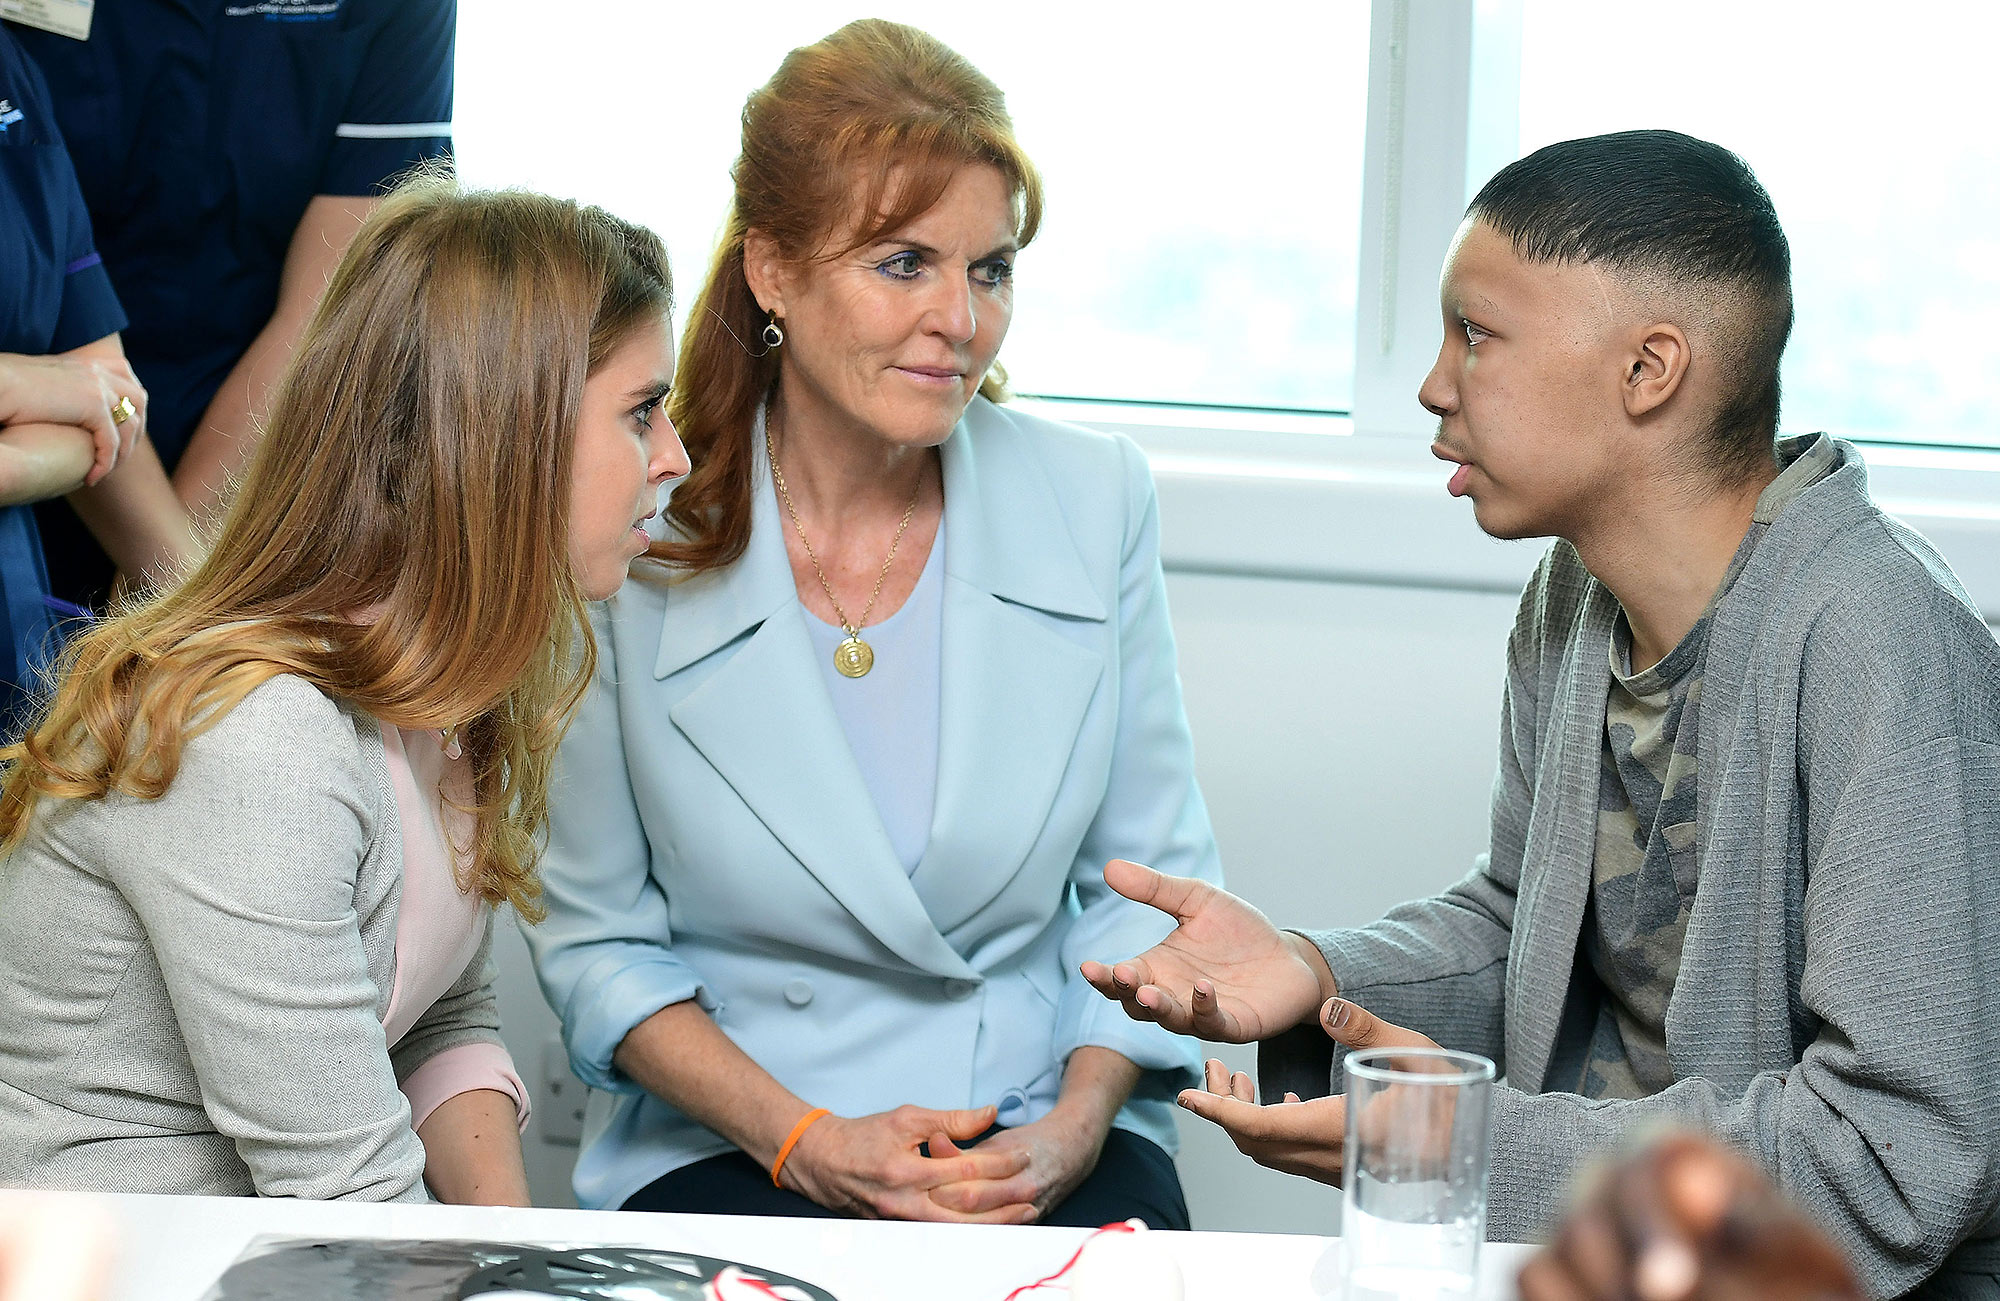 Princess Beatrice (left) and the Duchess of York meet Harry Sadler,17 from Colchester, during a visit to the Teenage Cancer Trust's young persons unit at University College Hospital, London. (Photo by Ian West/PA Images via Getty Images)